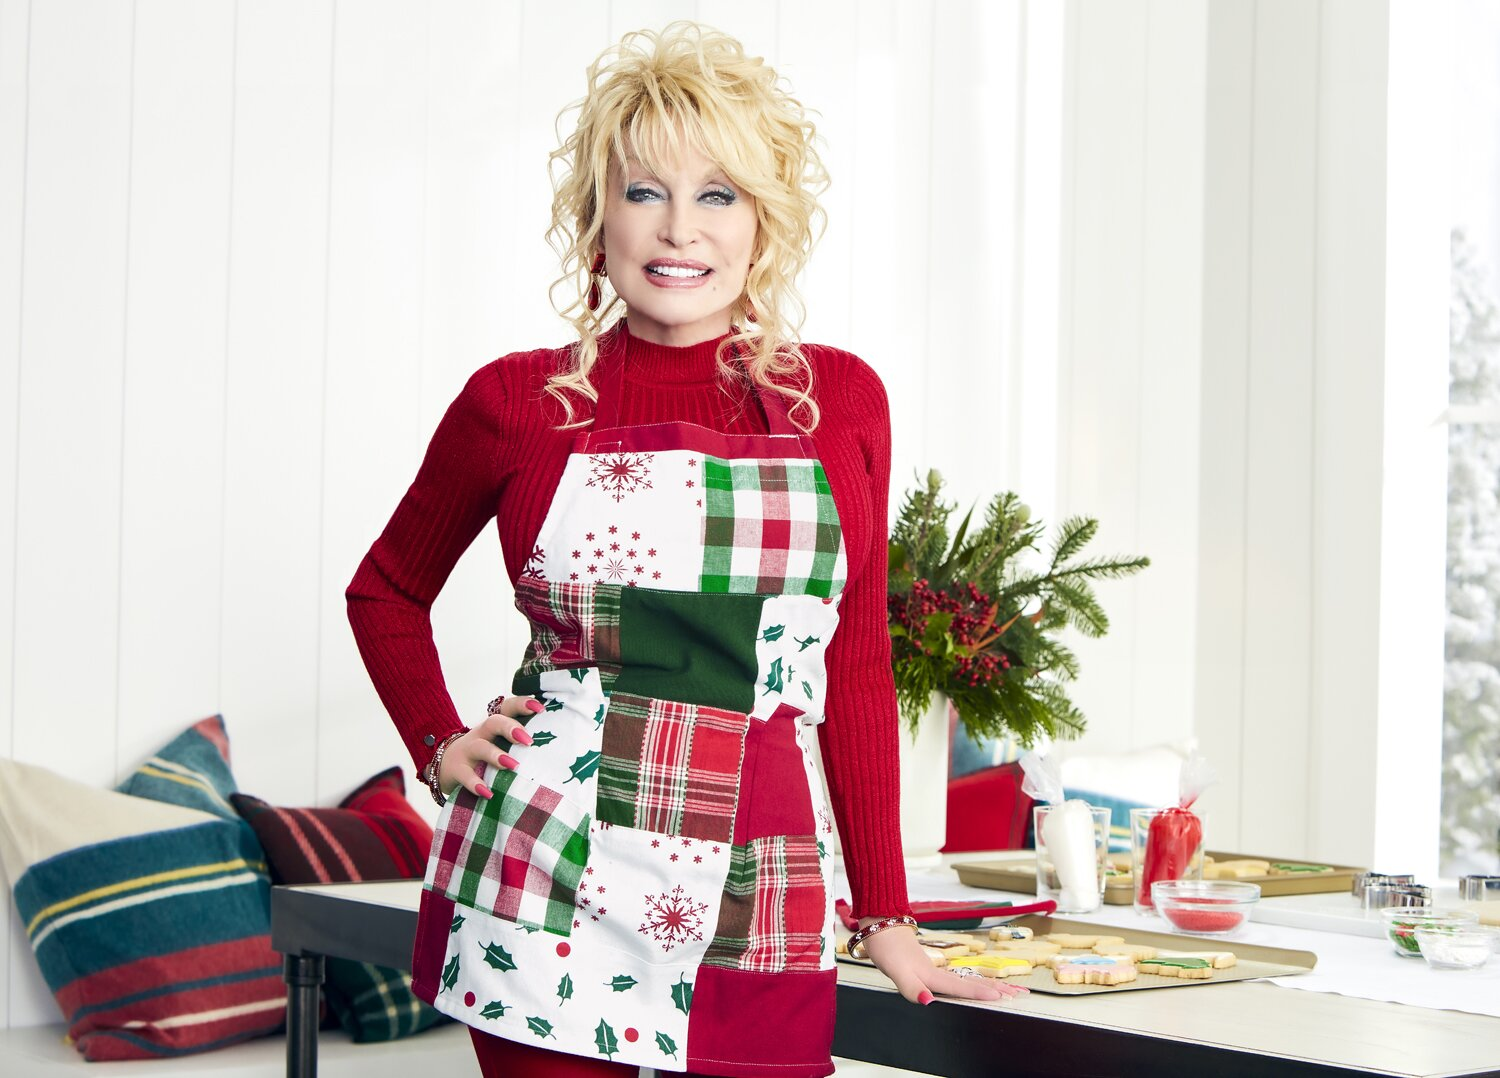 Williams Sonoma 2020 Christmas Catalog Dolly Parton Launches New Holiday Collection at Williams Sonoma